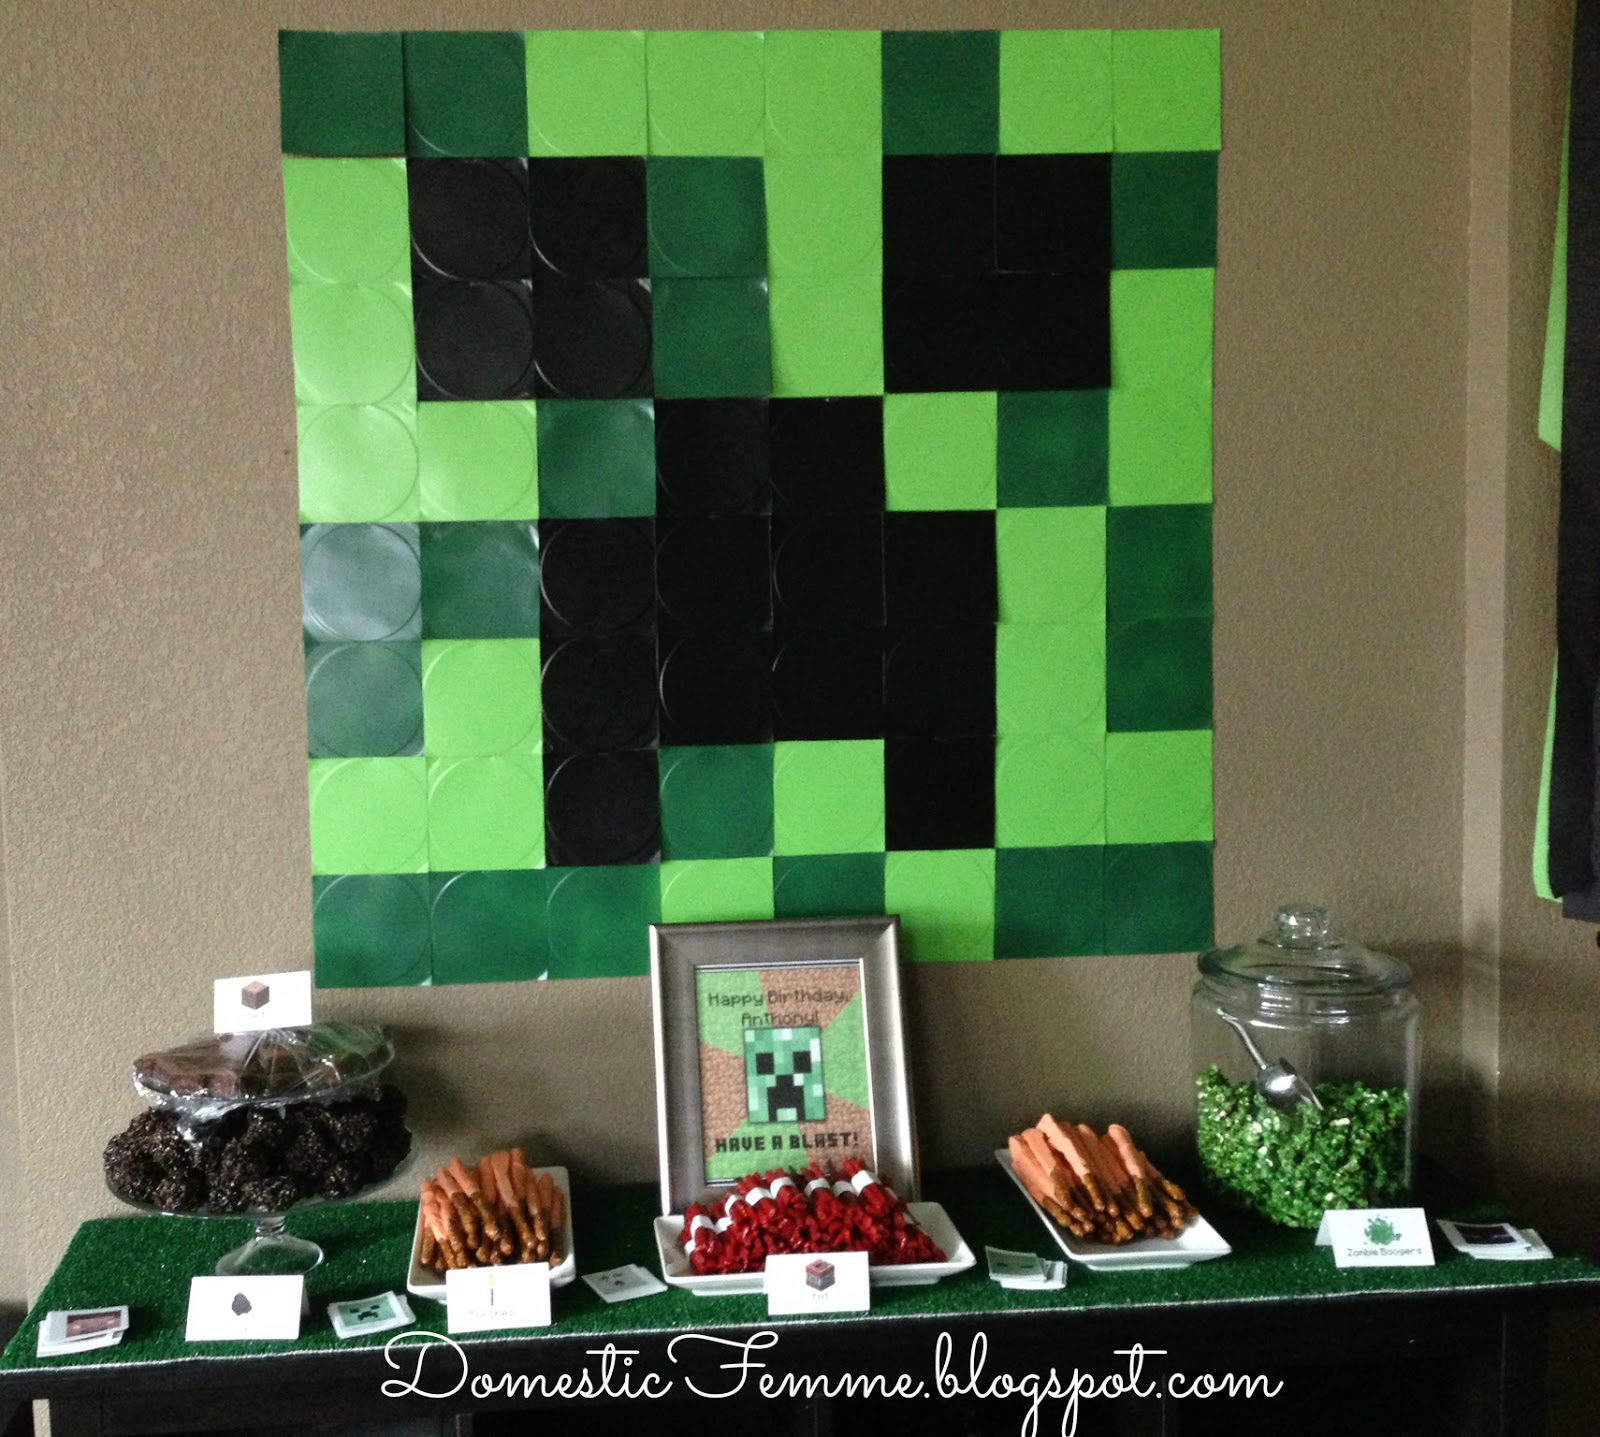 Home Decoration And Furnishing Articles Couple Characters: Domestic Femme: Minecraft Birthday Party